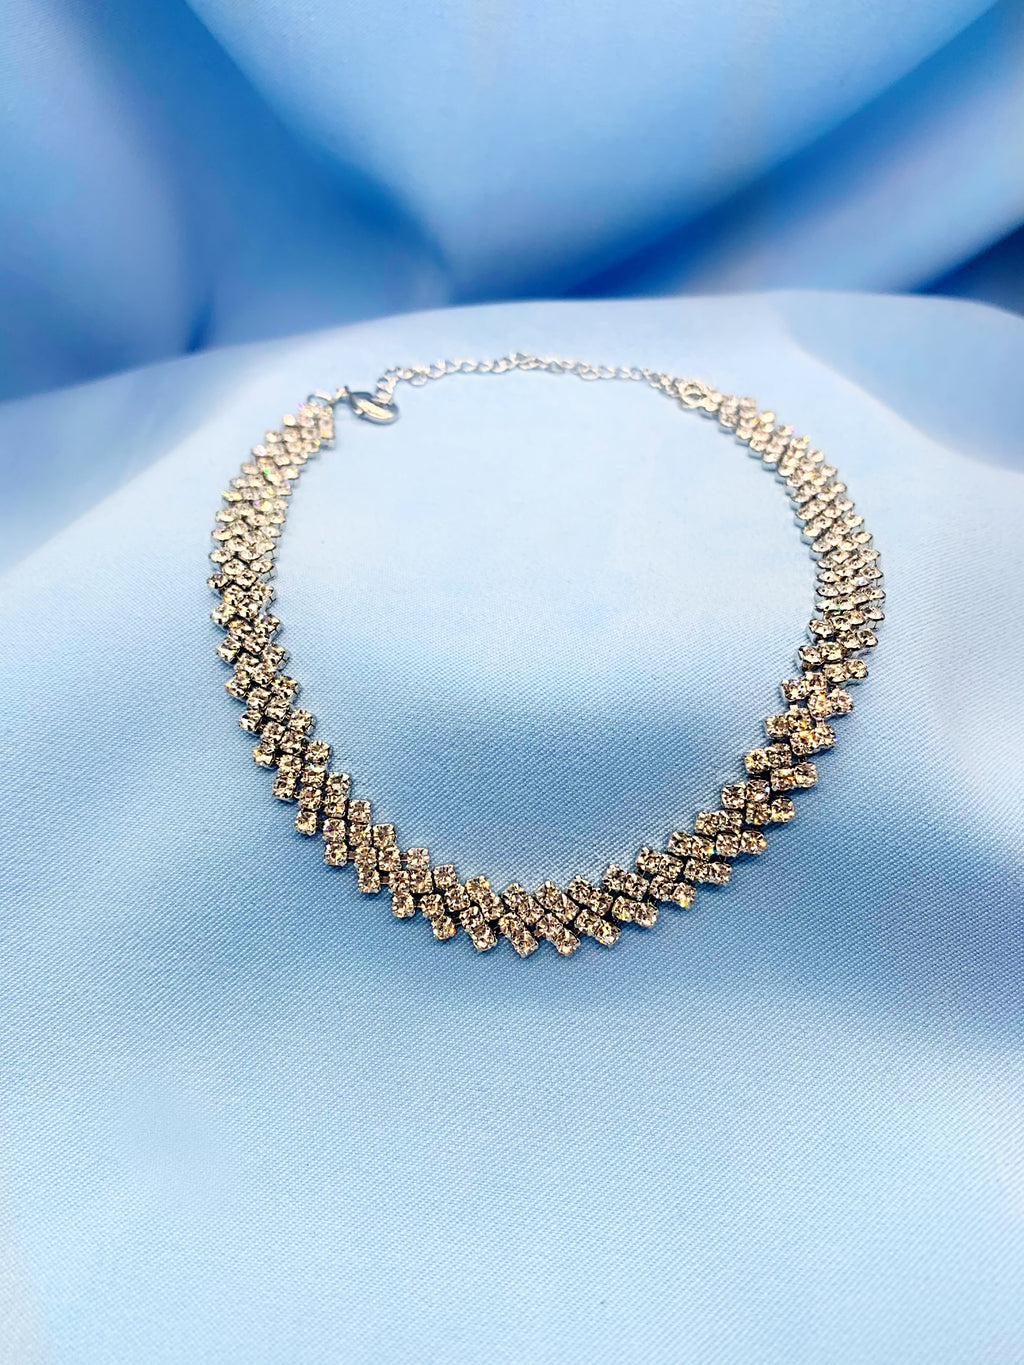 Rhinestone silver loose choker necklace